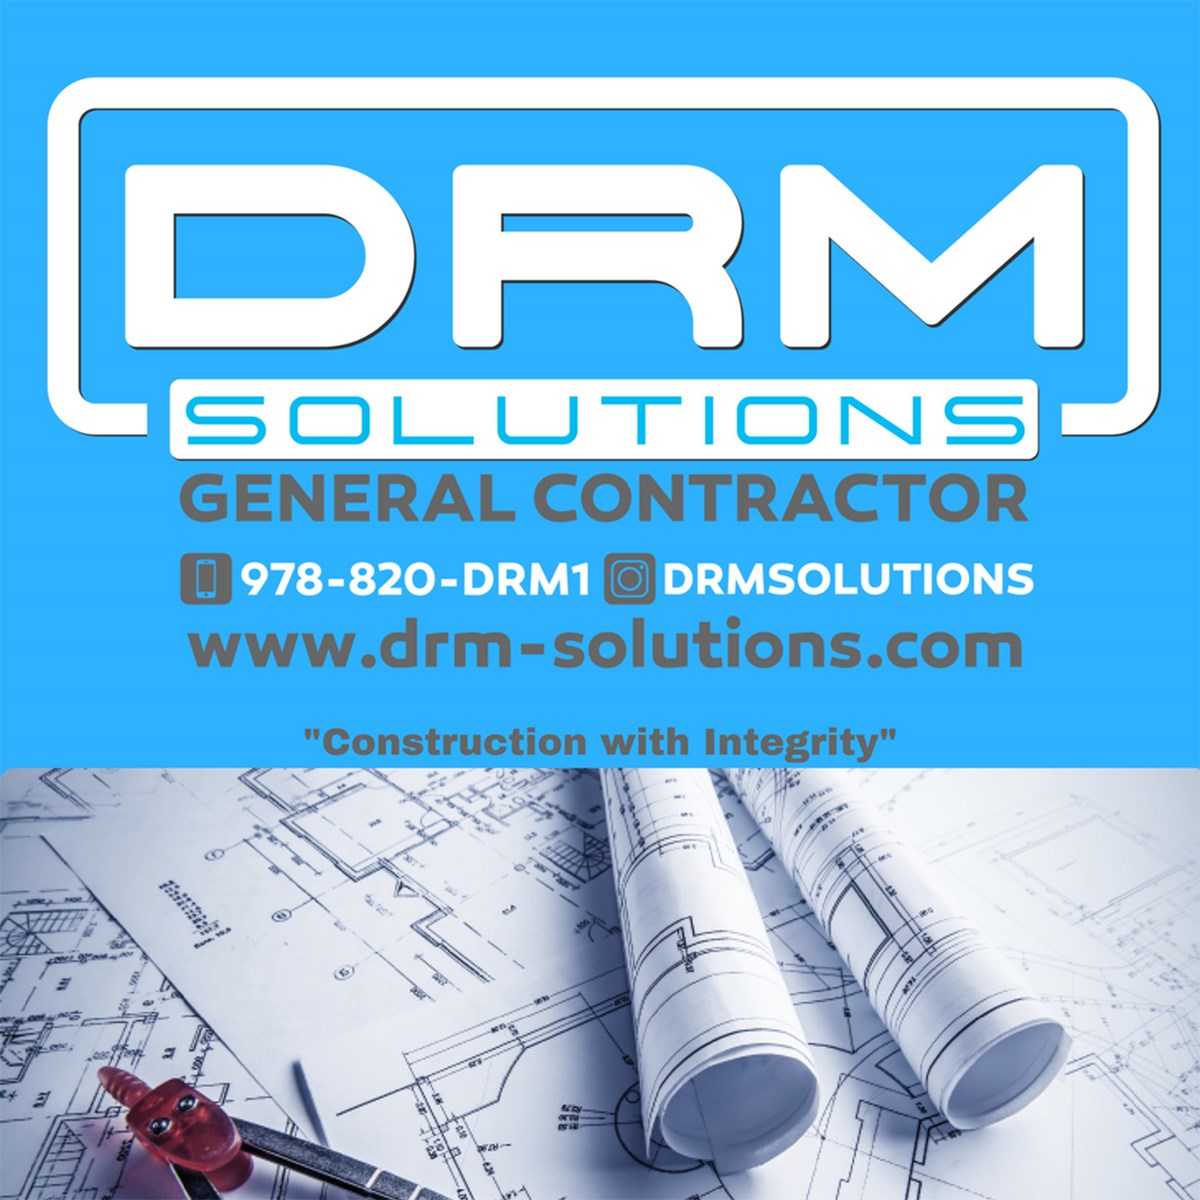 drm solutions logo. DRM Construction Solutions, LLC offers home improvements, specializing in kitchen and bathroom remodels.